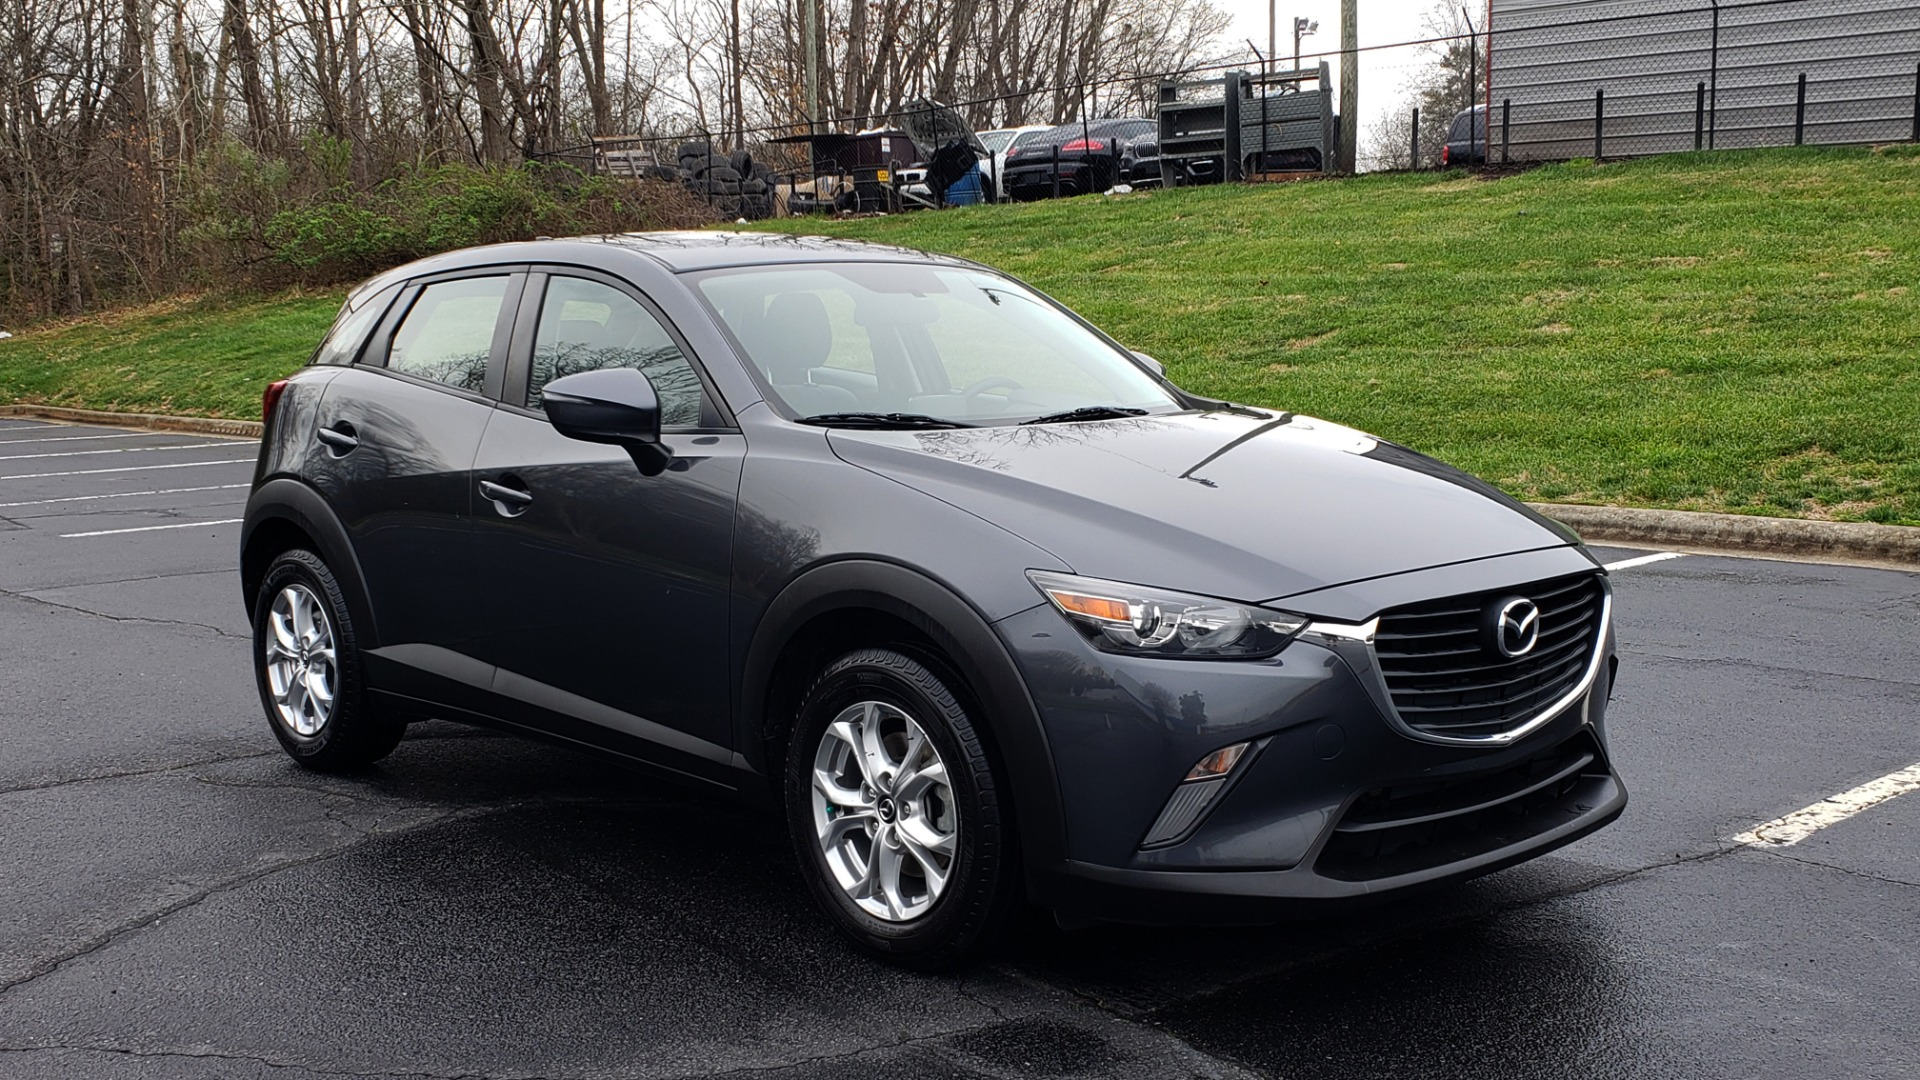 Used 2016 Mazda CX-3 TOURING AWD / 4-CYL / 6-SPD AUTO / NAV / HTD STS / 7-INCH DISPLAY for sale Sold at Formula Imports in Charlotte NC 28227 4